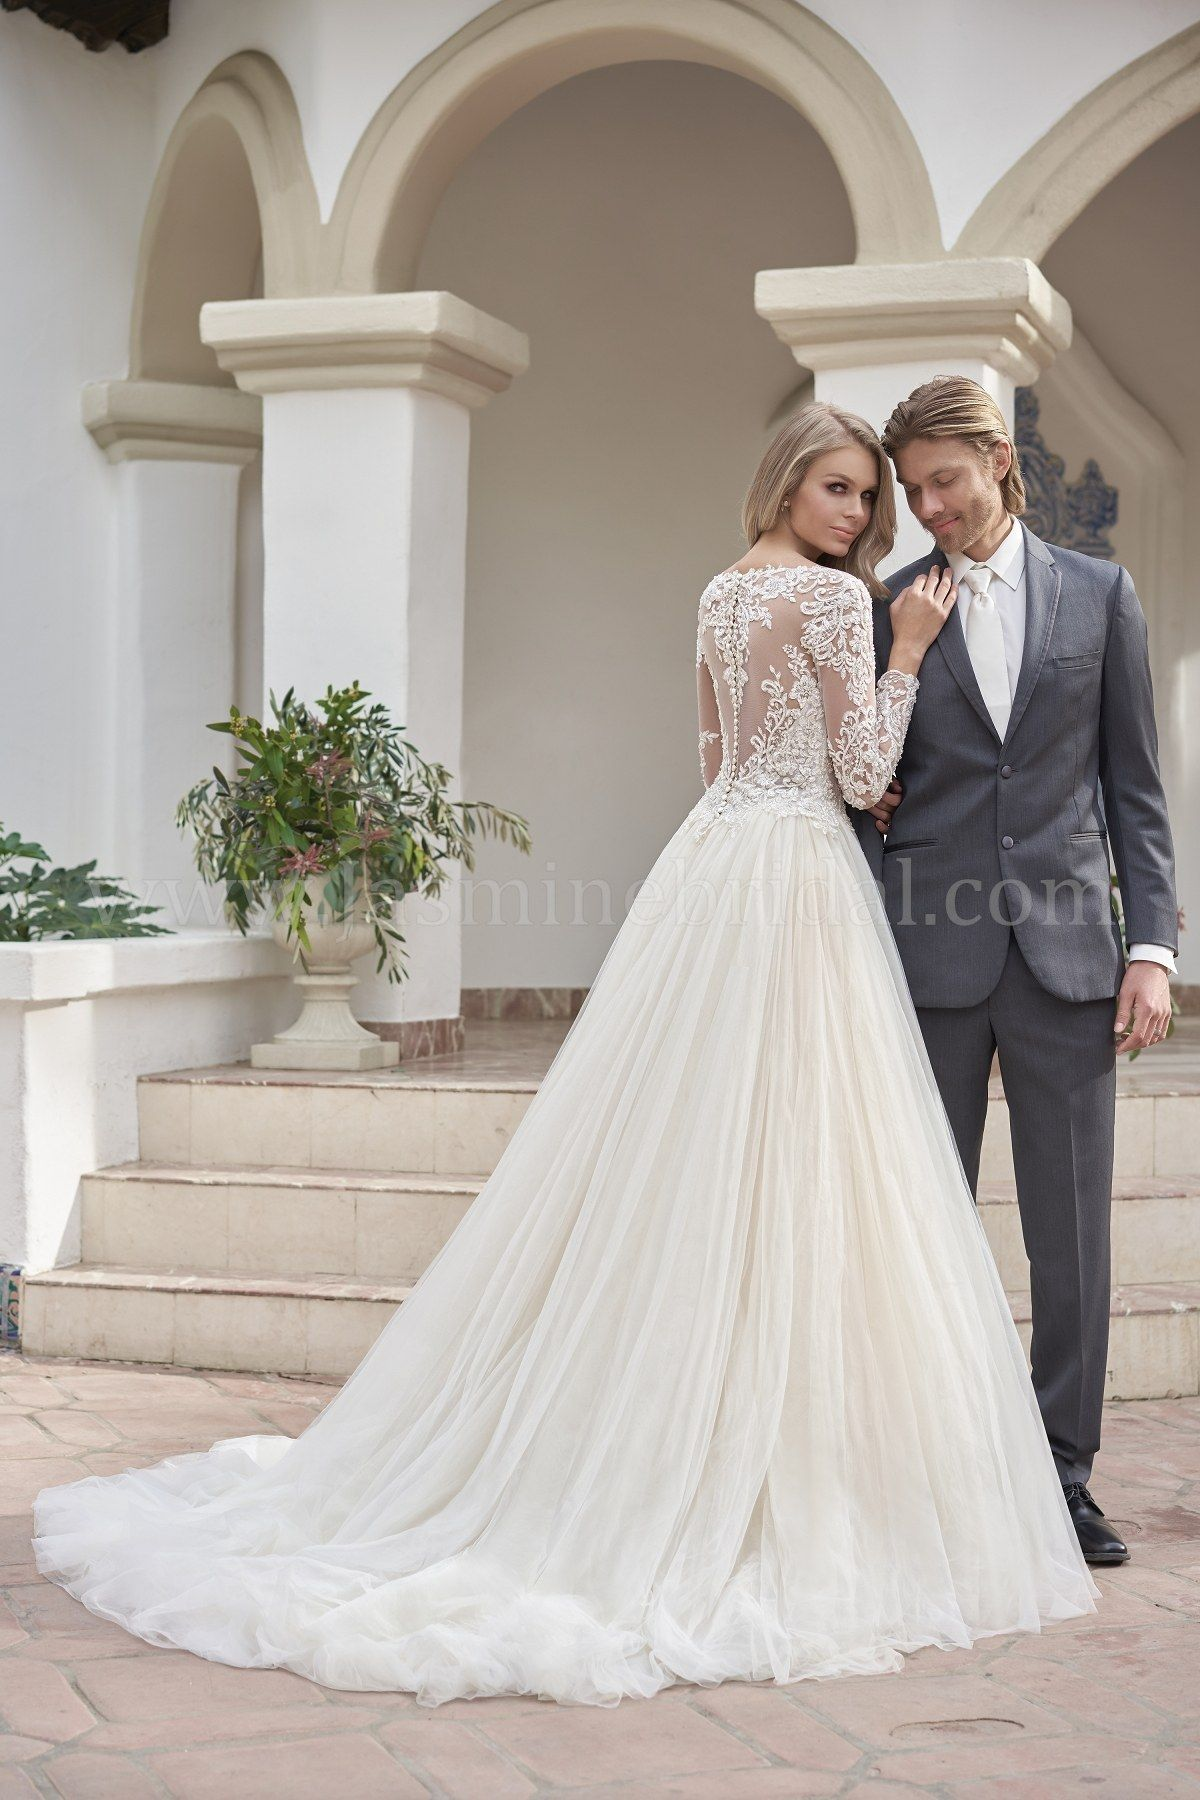 T202061 Illusion Bodice Illusion Neckline Embroidered Lace Tulle Wedding Dress Bridal Wedding Dresses Bridal Ball Gown Wedding Dress Couture